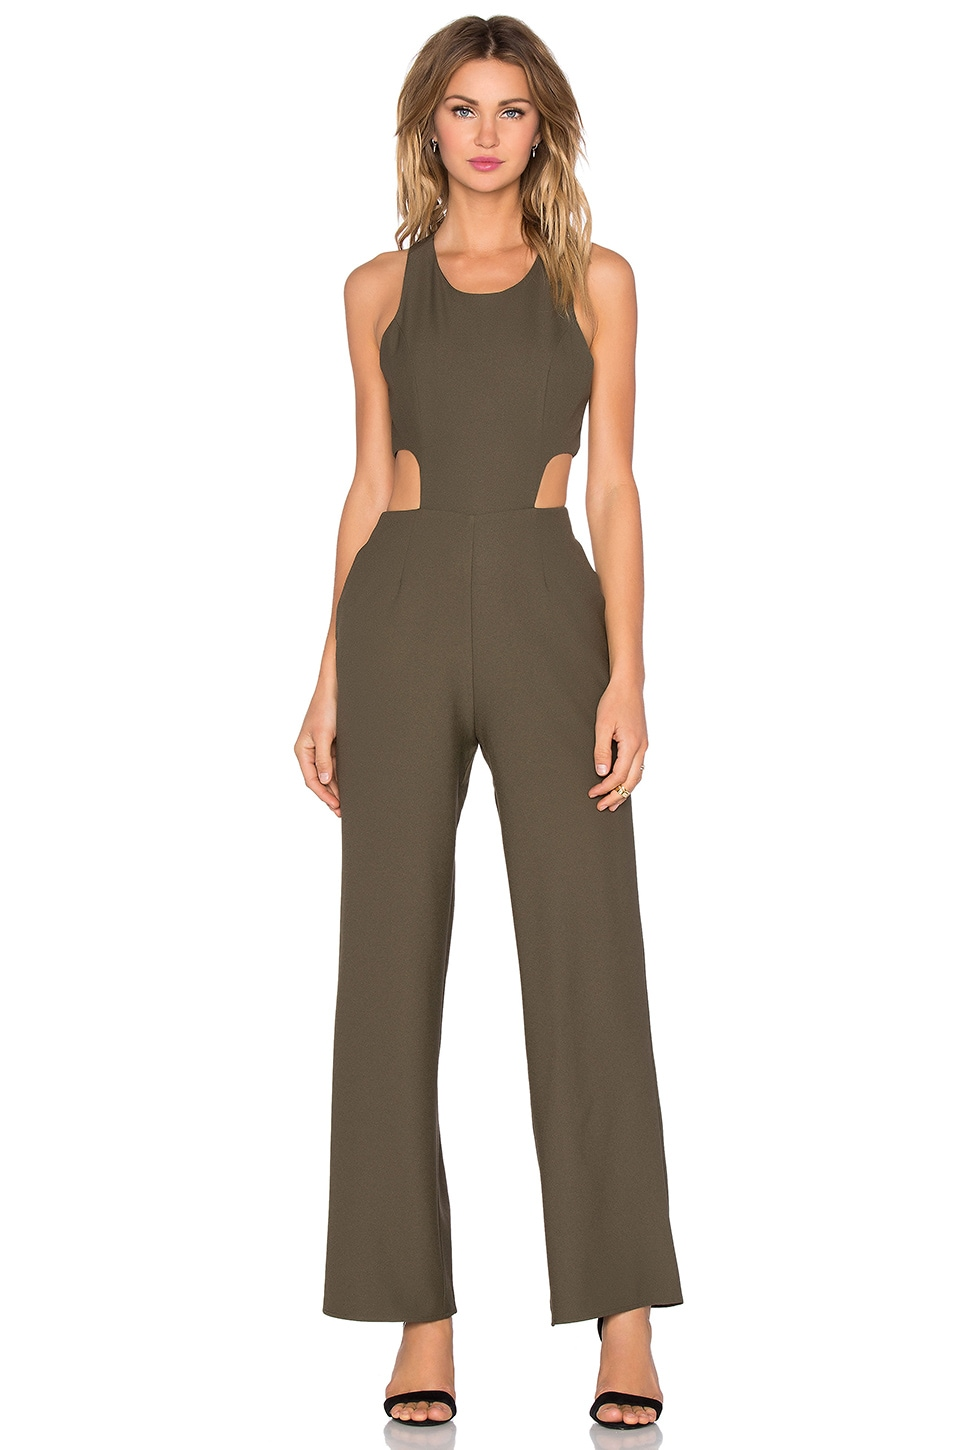 NBD x REVOLVE Use To Jumpsuit in Army Green